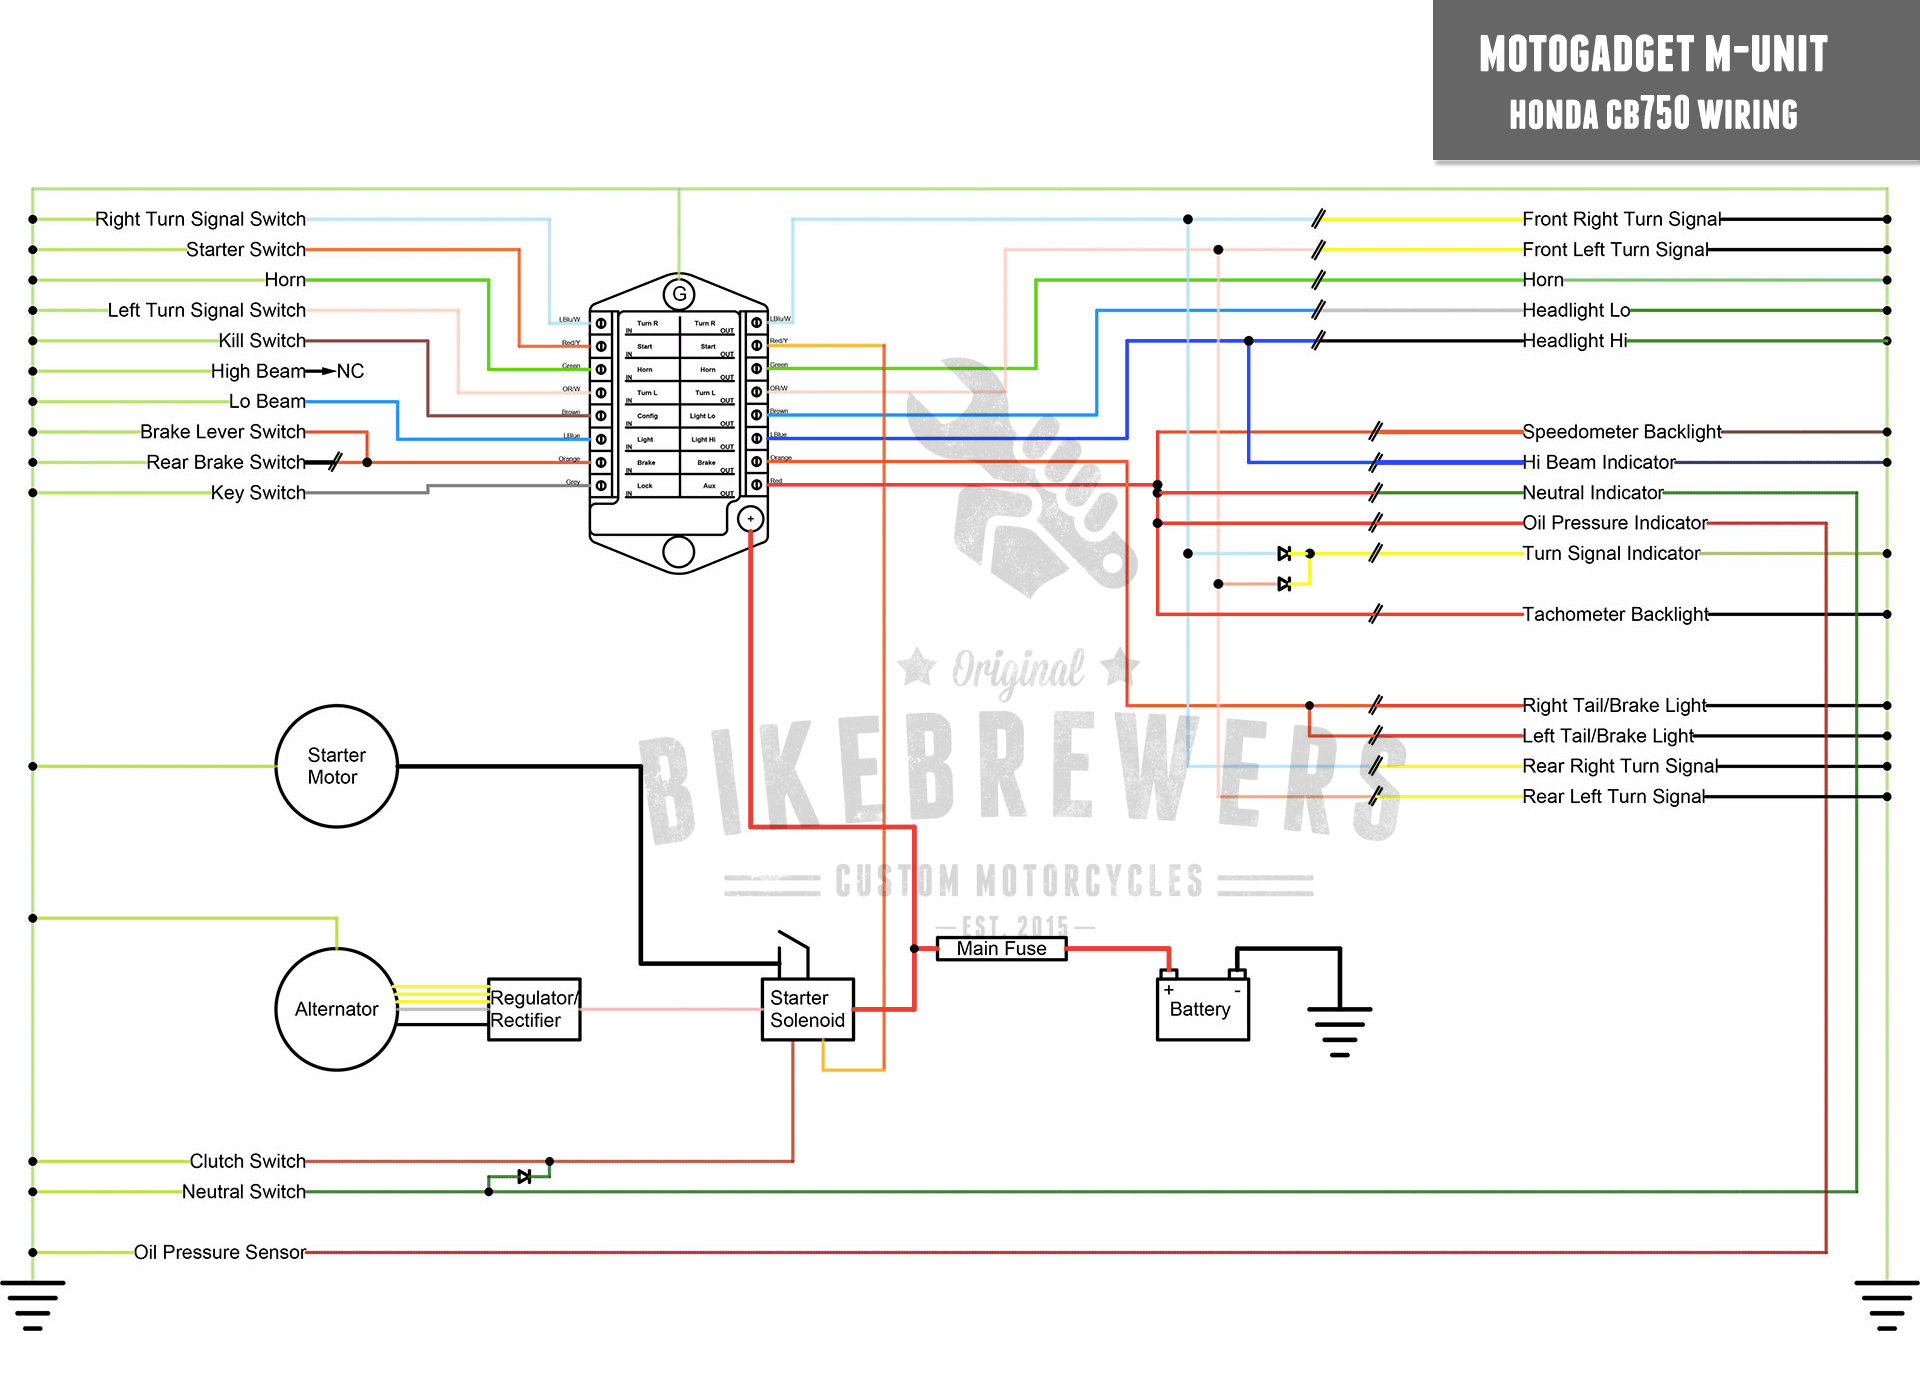 MotoGadget Wiring Honda CB750 motogadget m unit wiring bikebrewers com honda wiring diagram at gsmportal.co